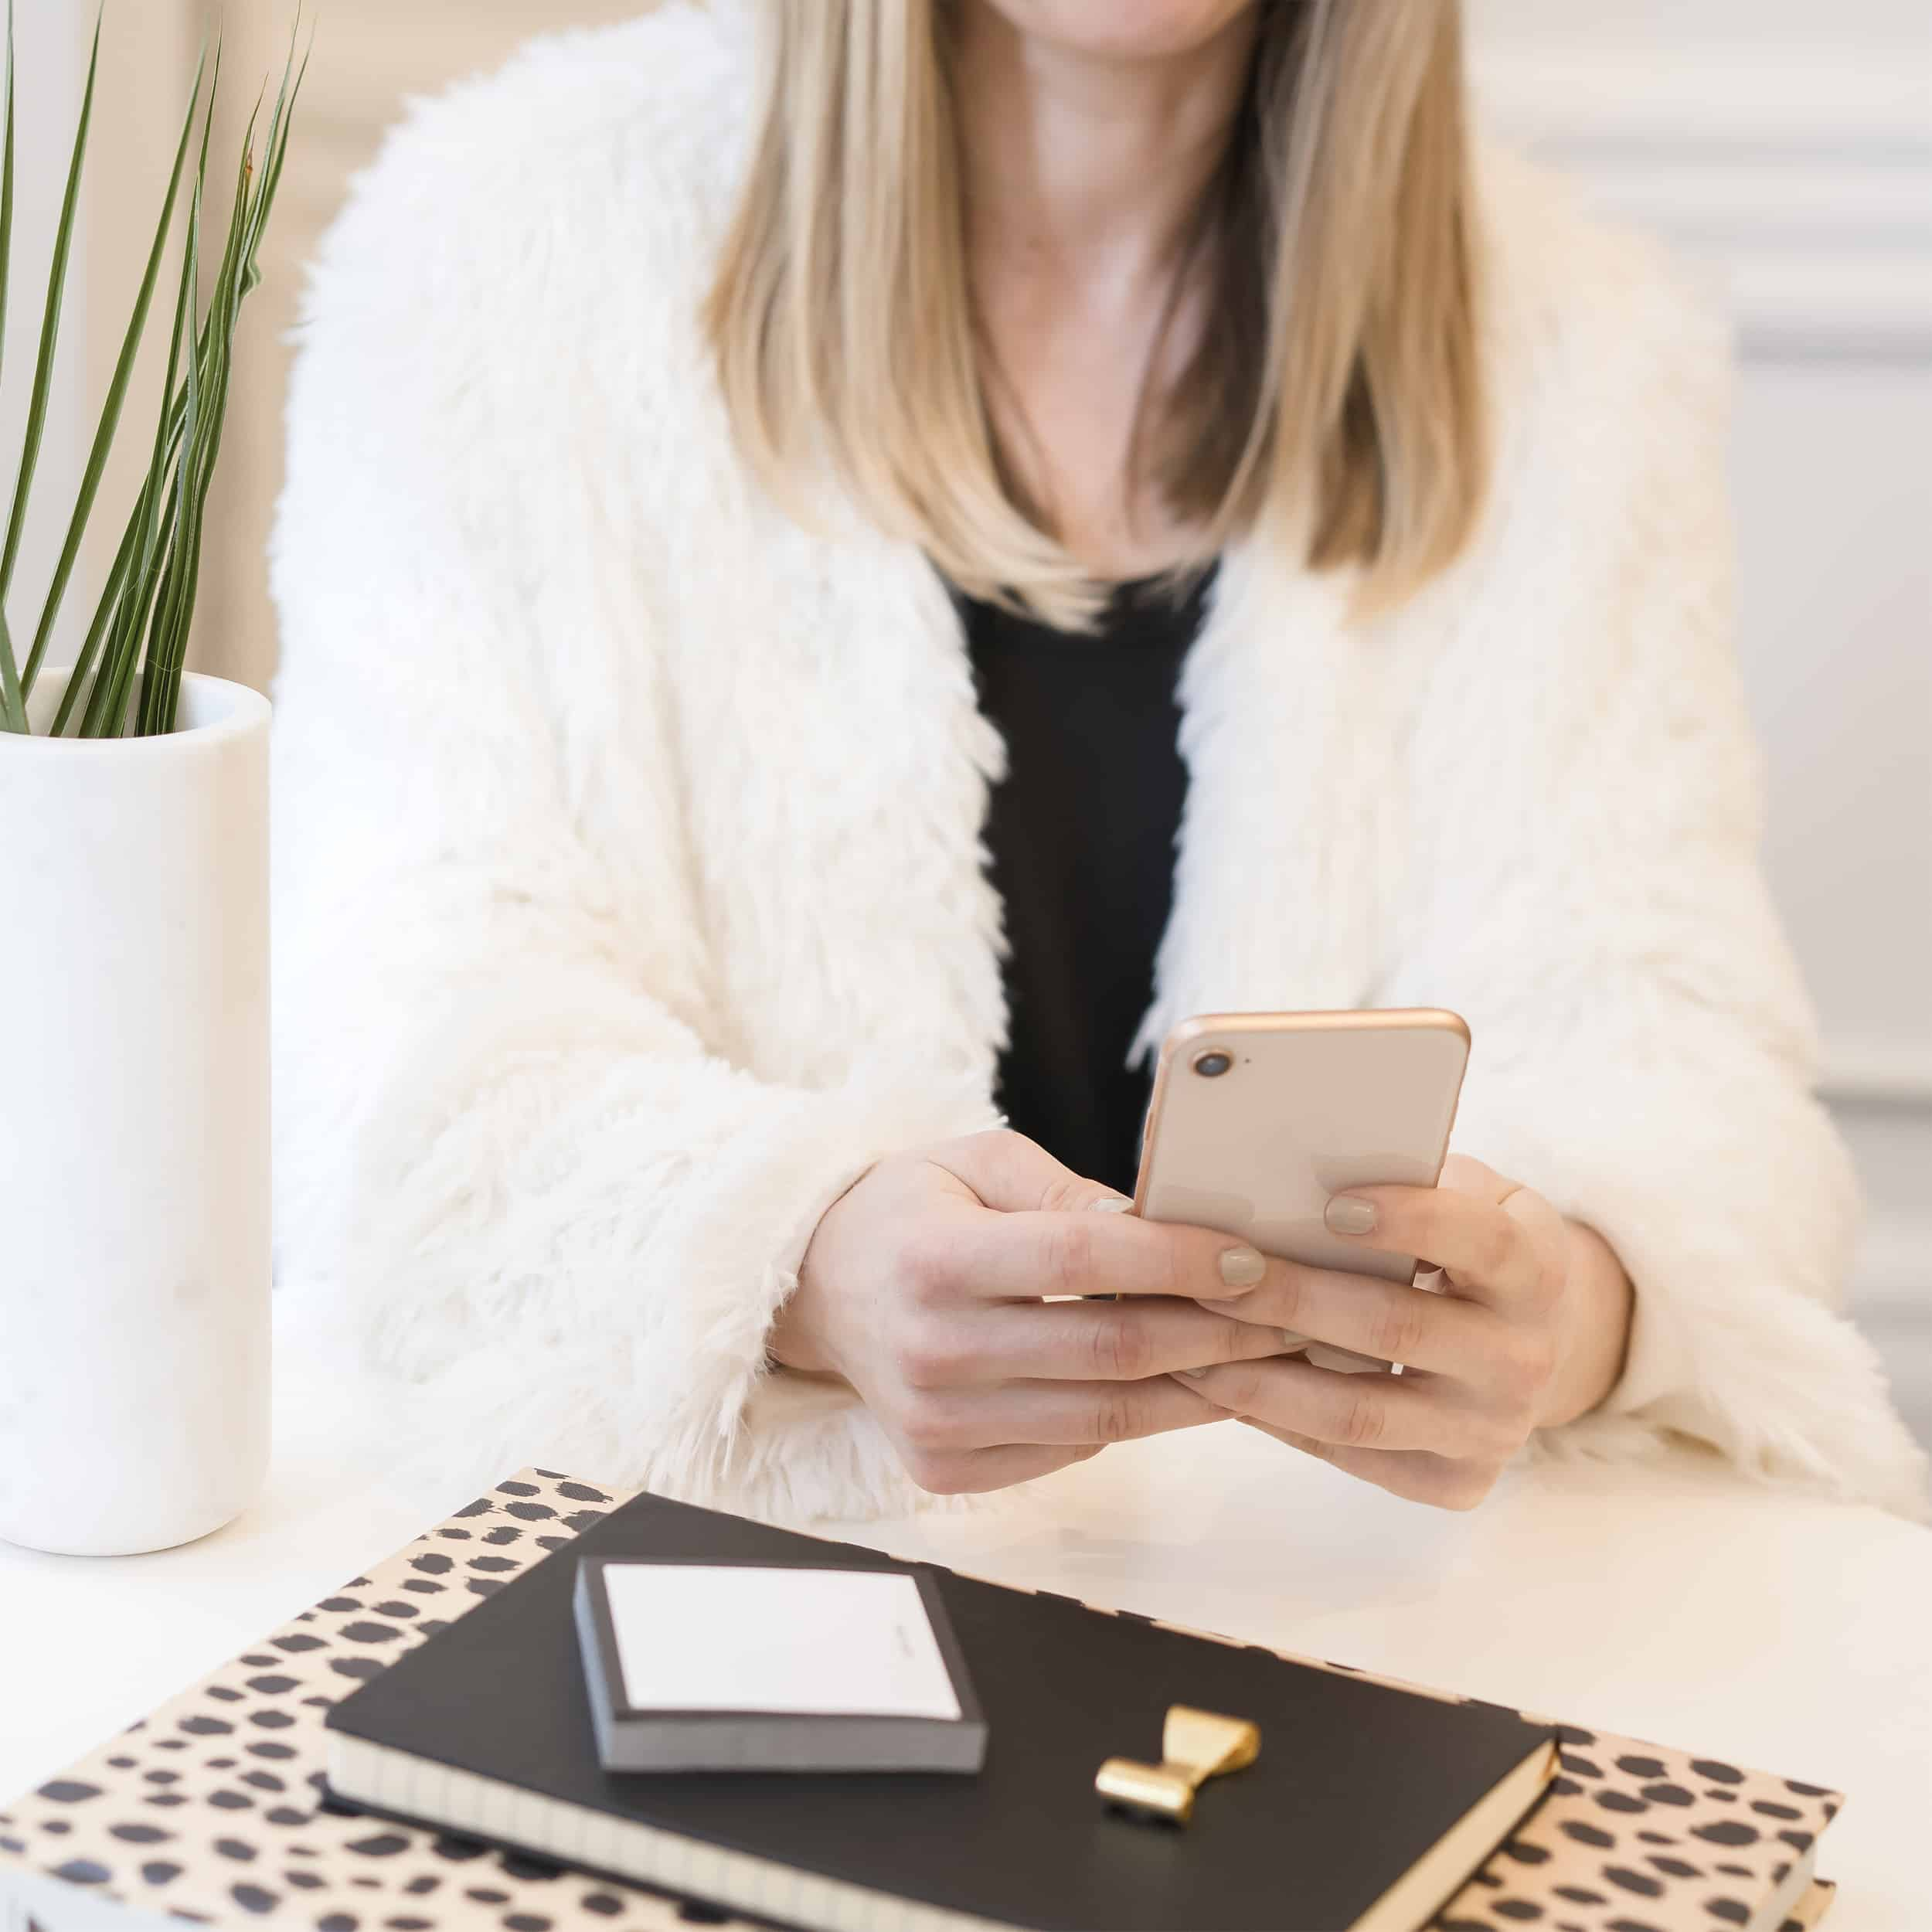 woman on her phone, sitting at desk, with leopard notepad